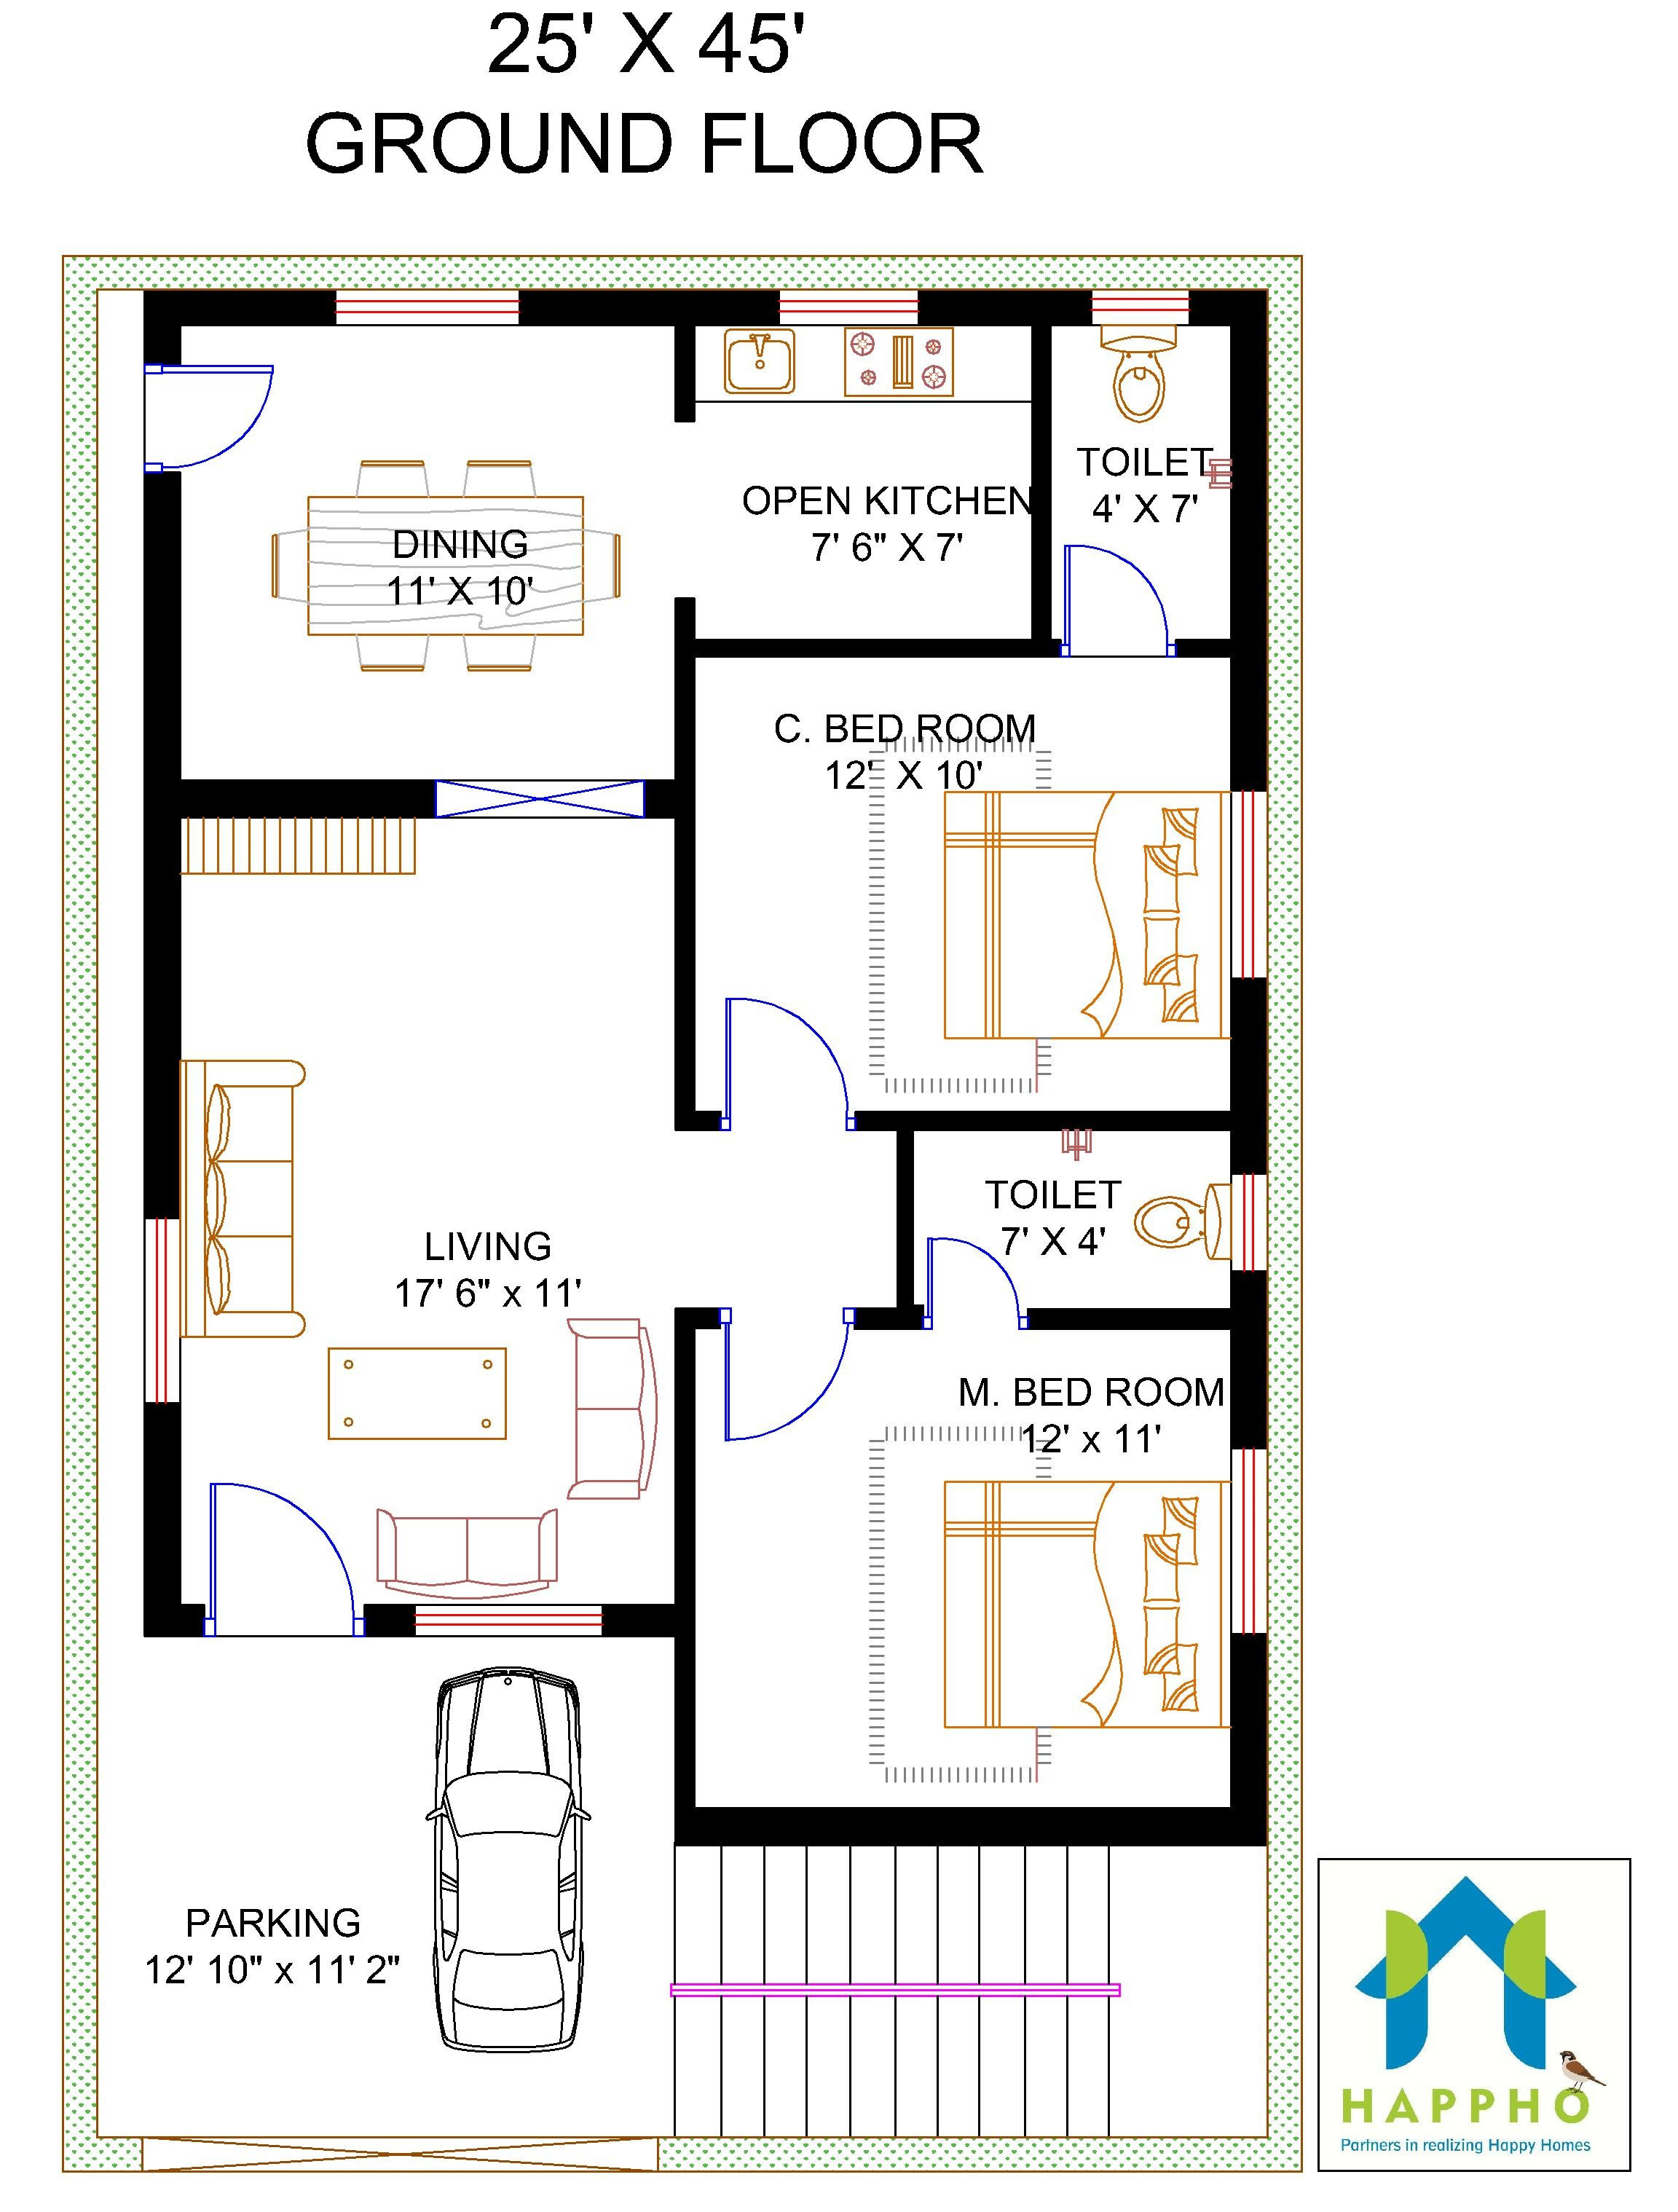 Software to Create House Plans Fresh House Plan Drawing at Paintingvalley